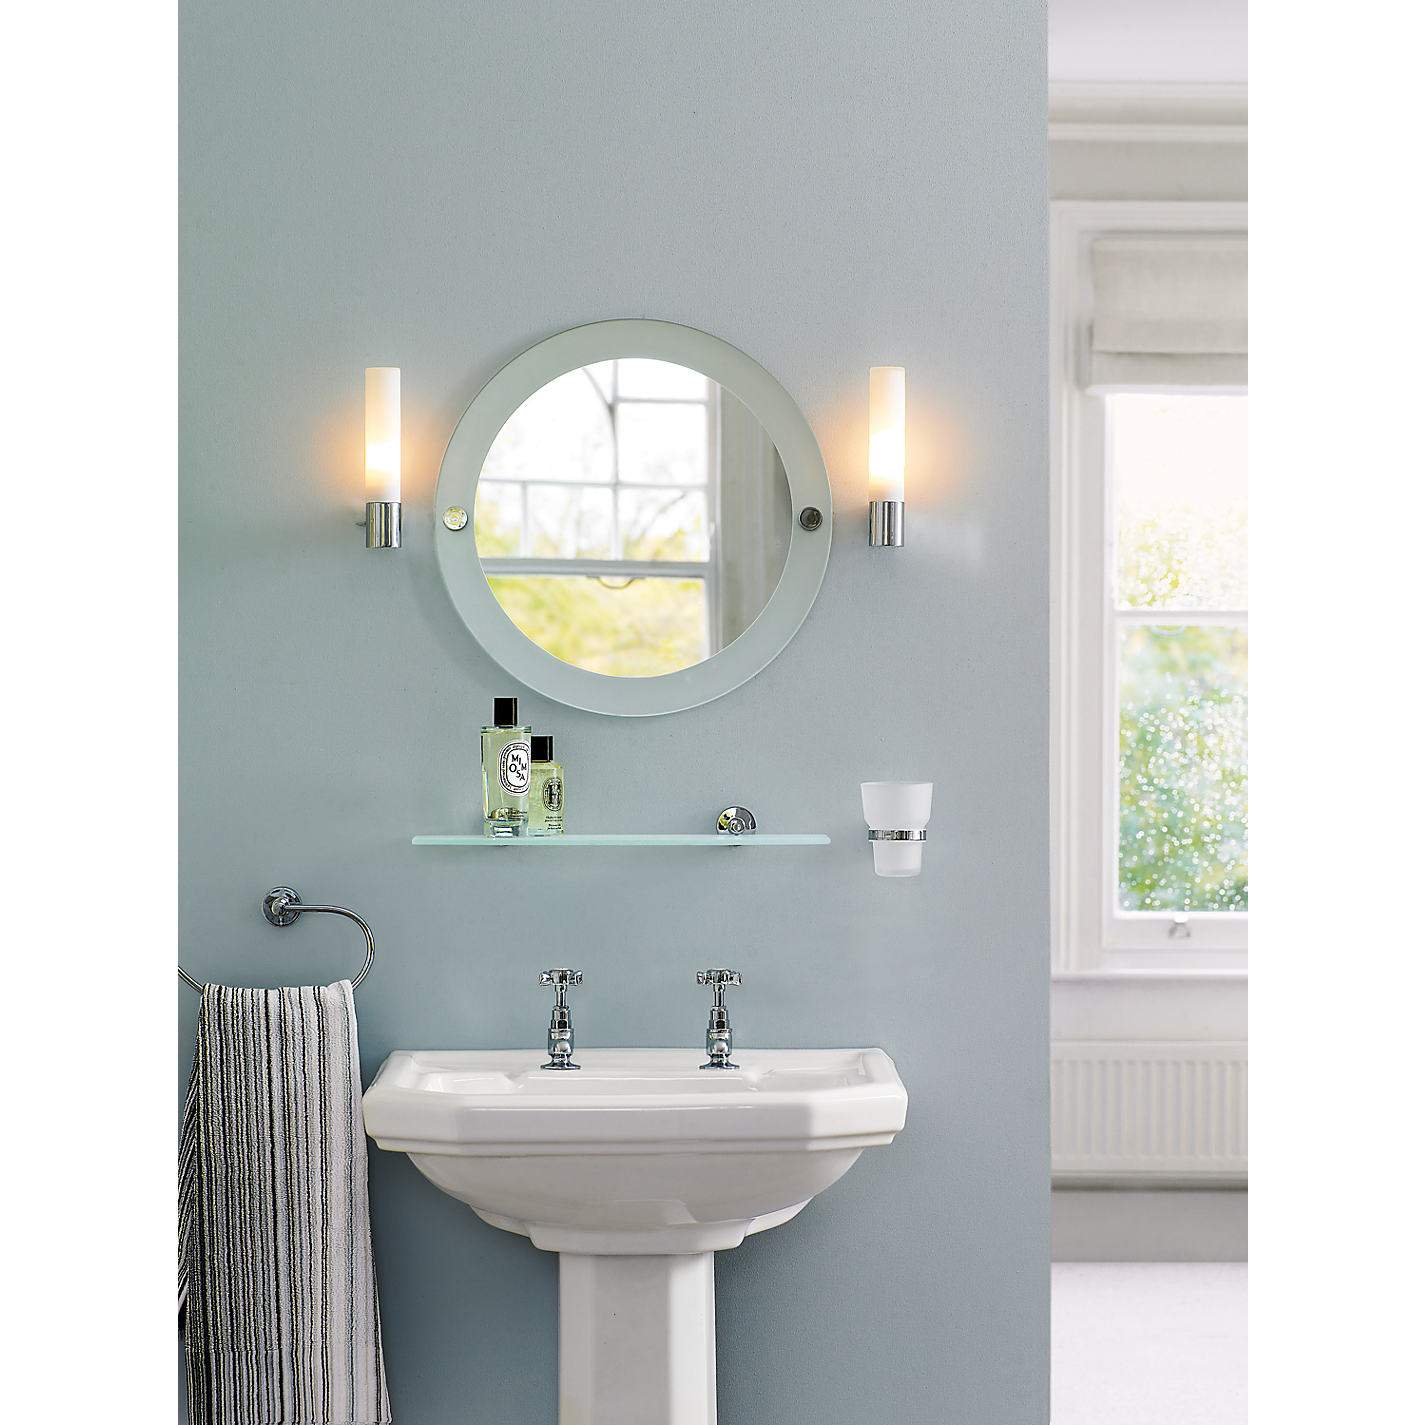 Buy astro bari bathroom wall light john lewis buy astro bari bathroom wall light online at johnlewis mozeypictures Image collections